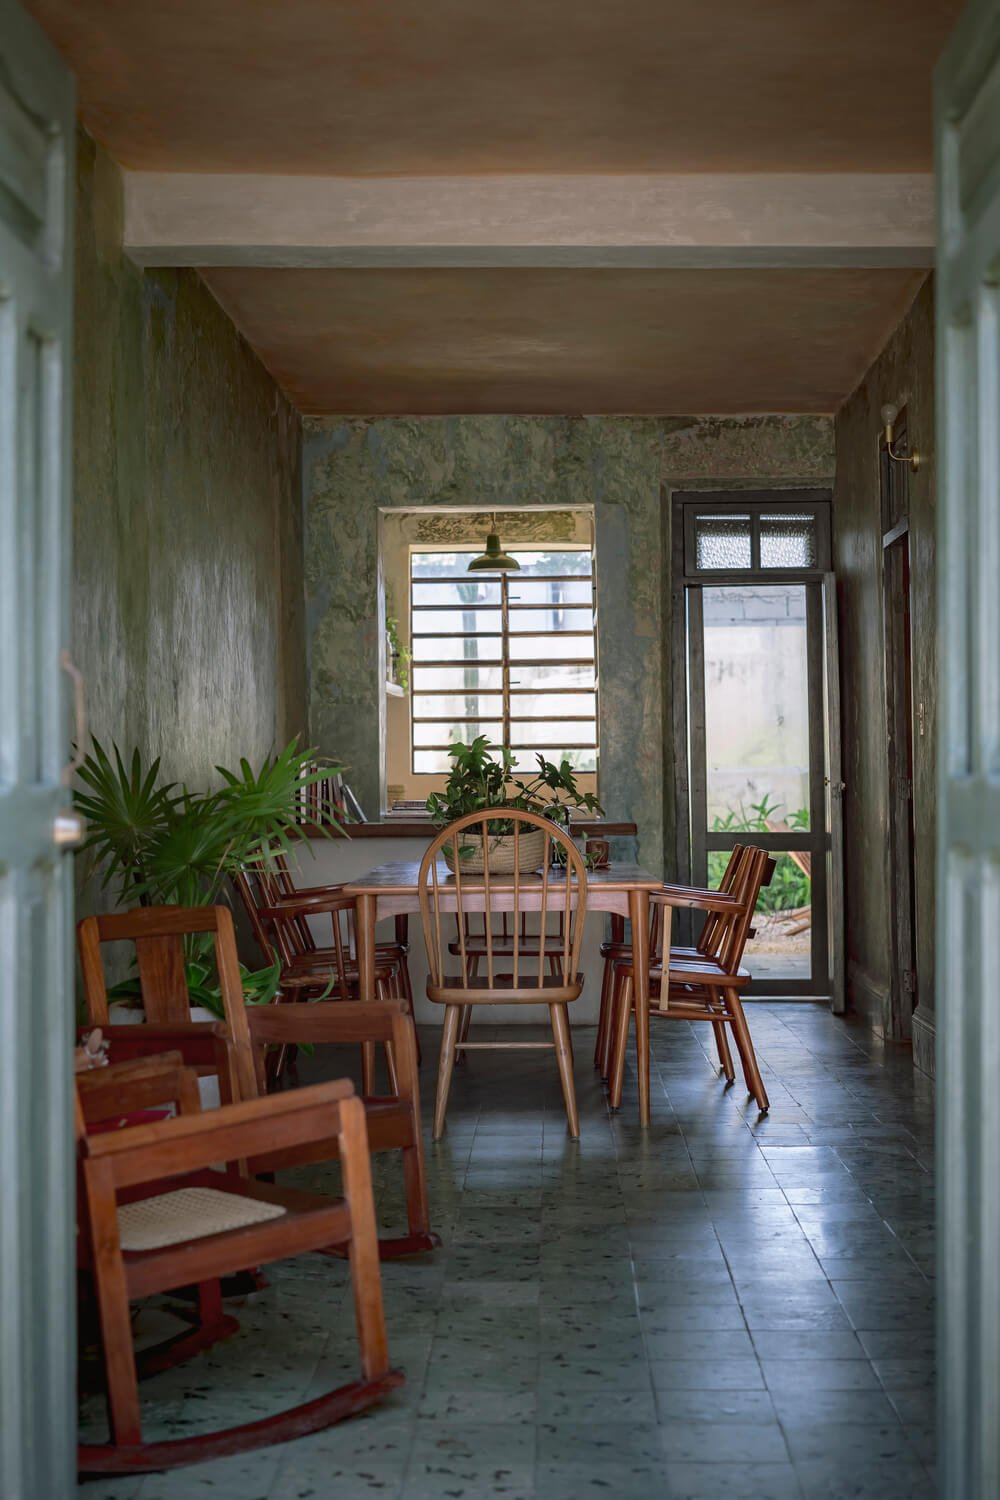 This is a close look at the dining area that has a small wooden dining set that stands out against the green patterned walls.